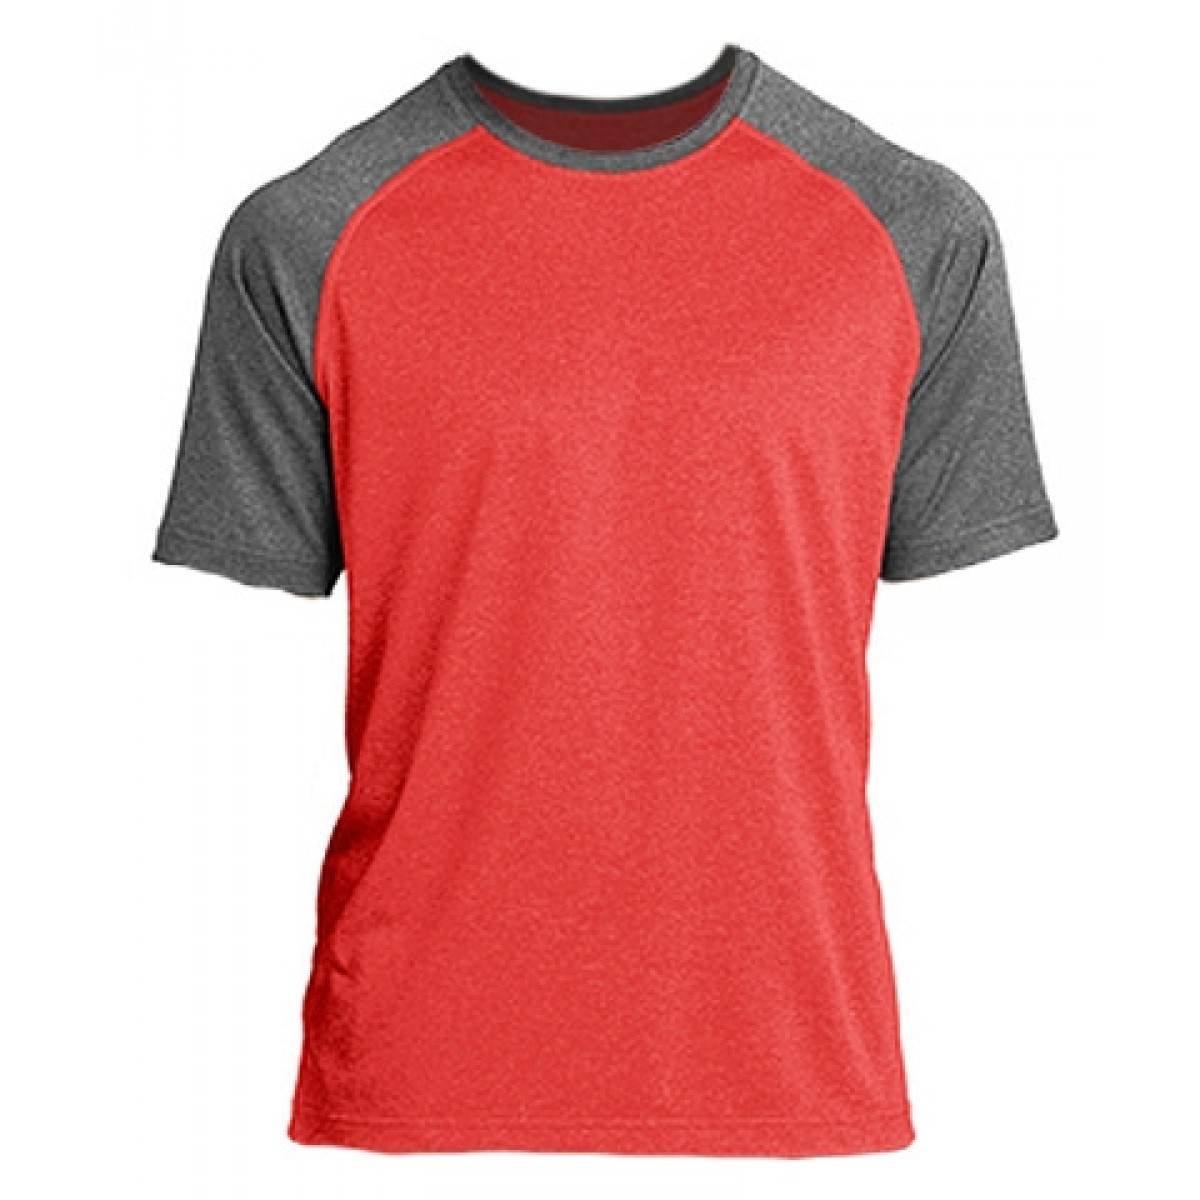 Heather on Heather Dri-Fit Tee-Heathered Red-XL